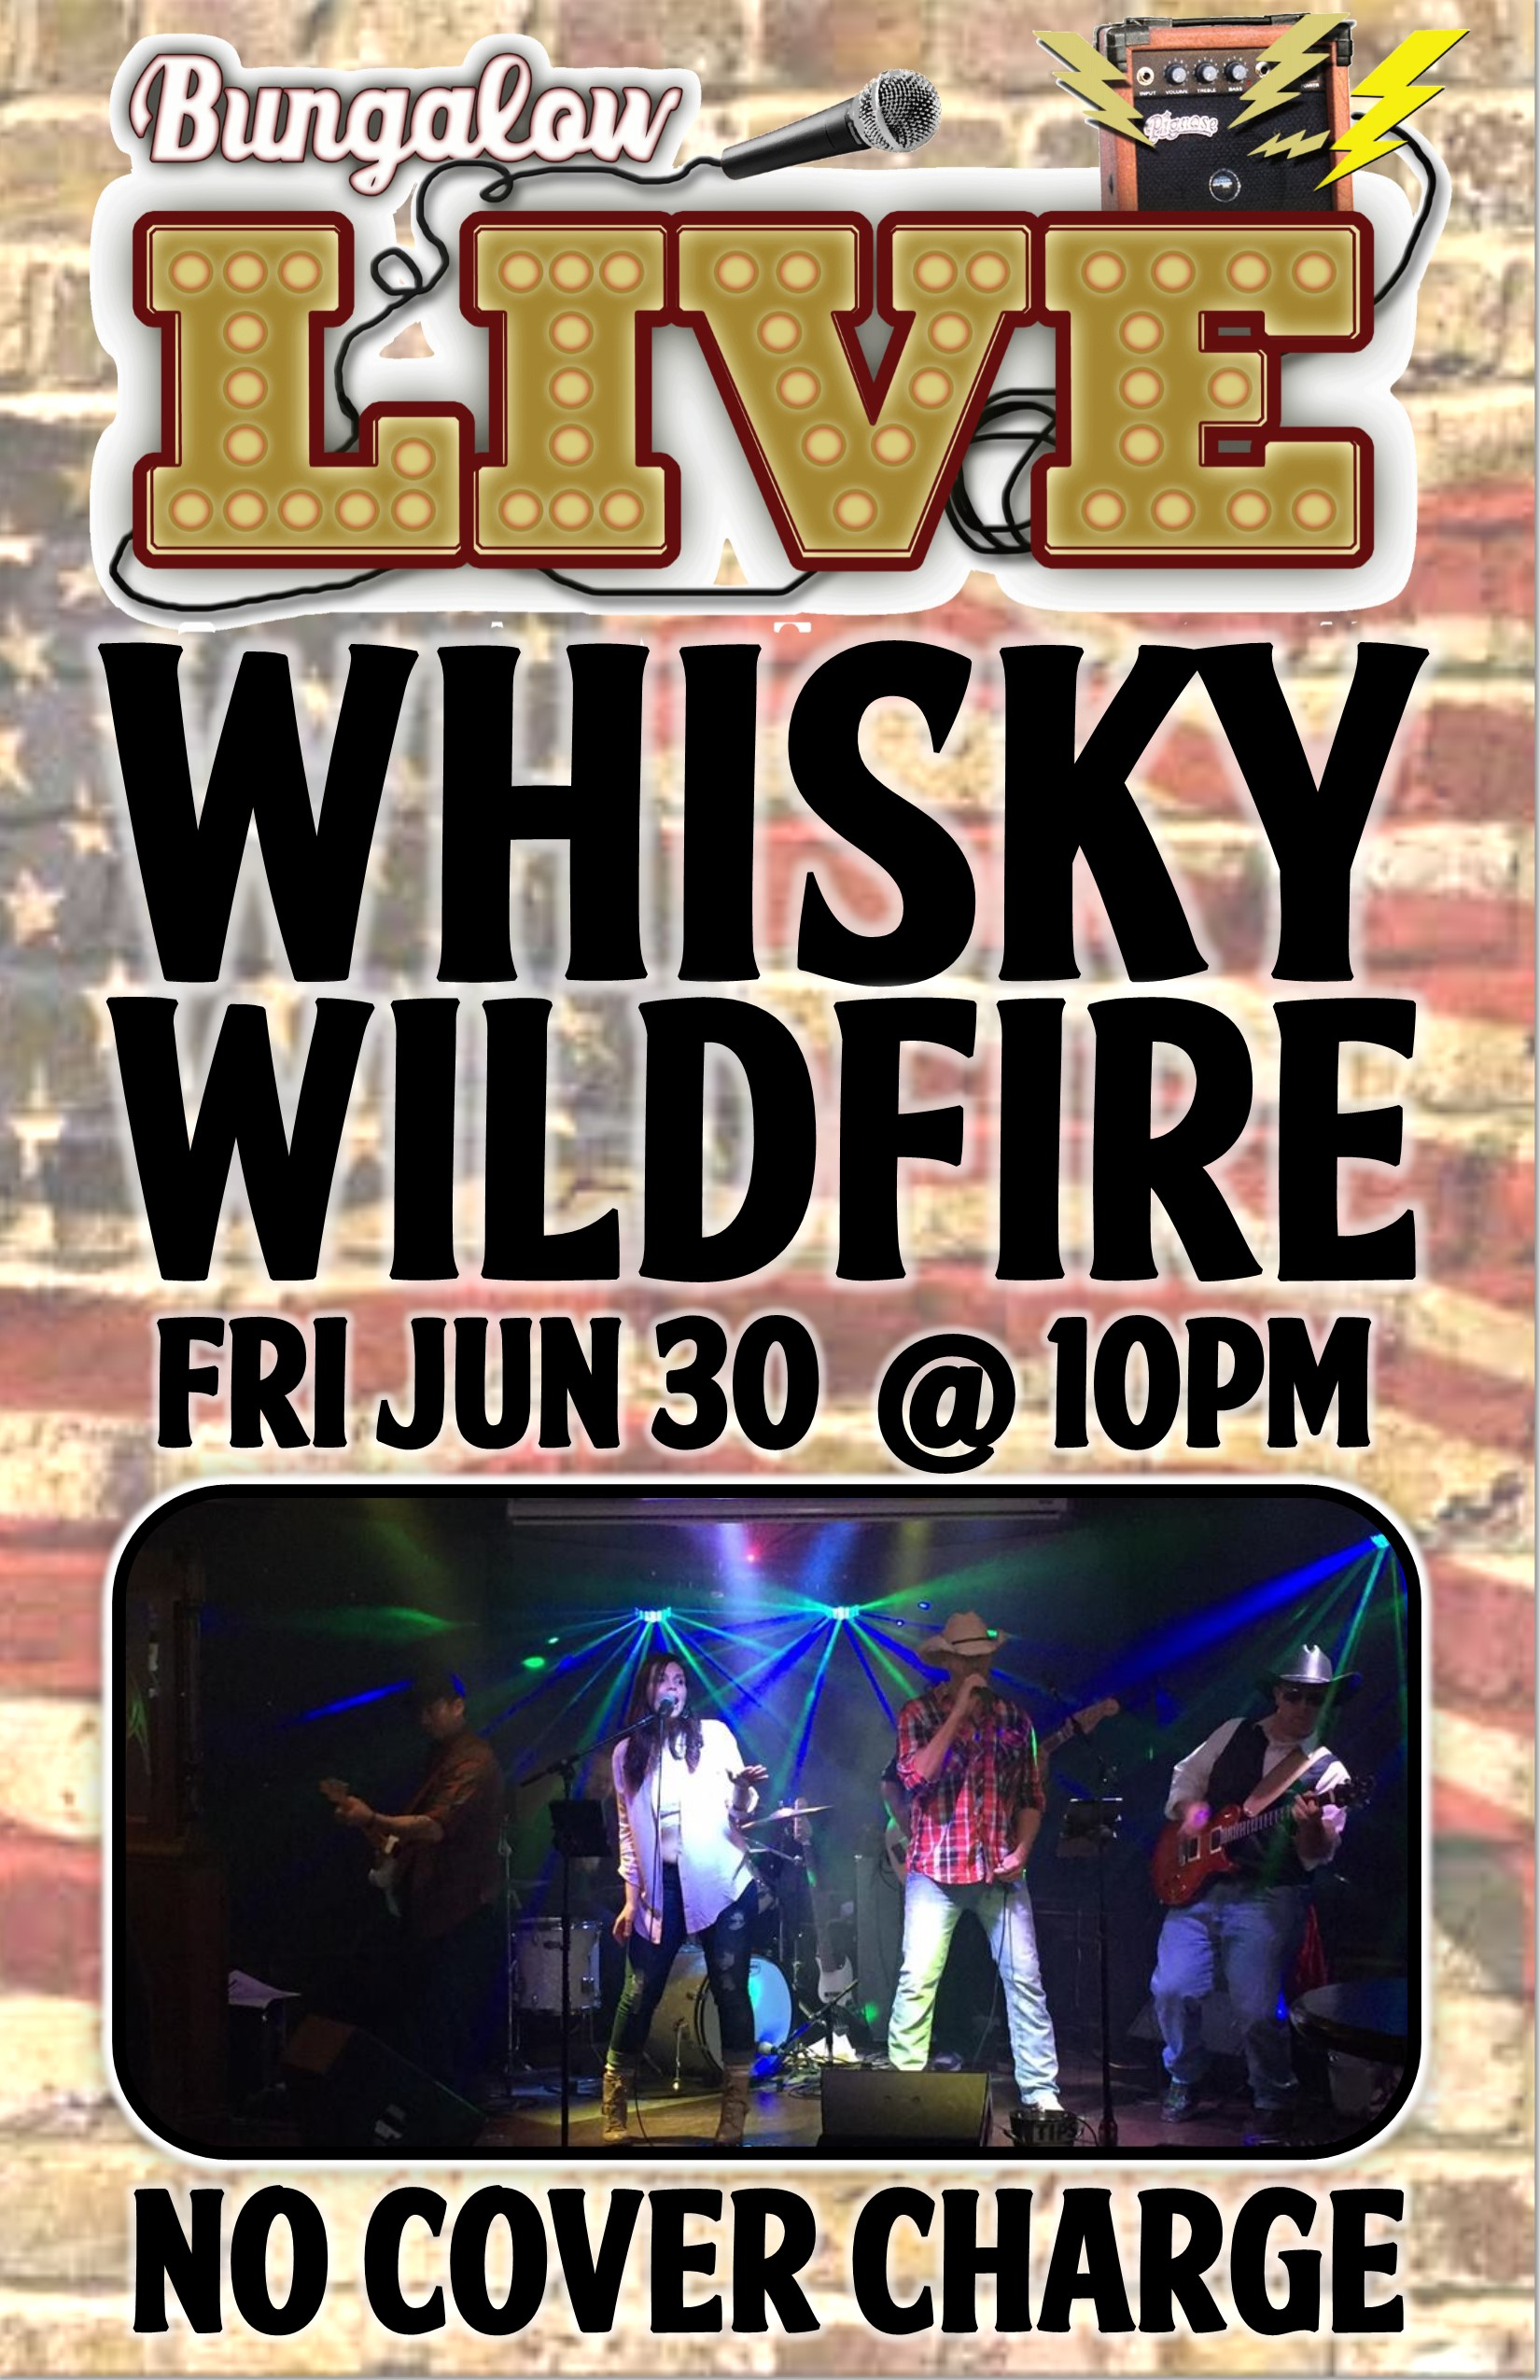 whisky wildfire